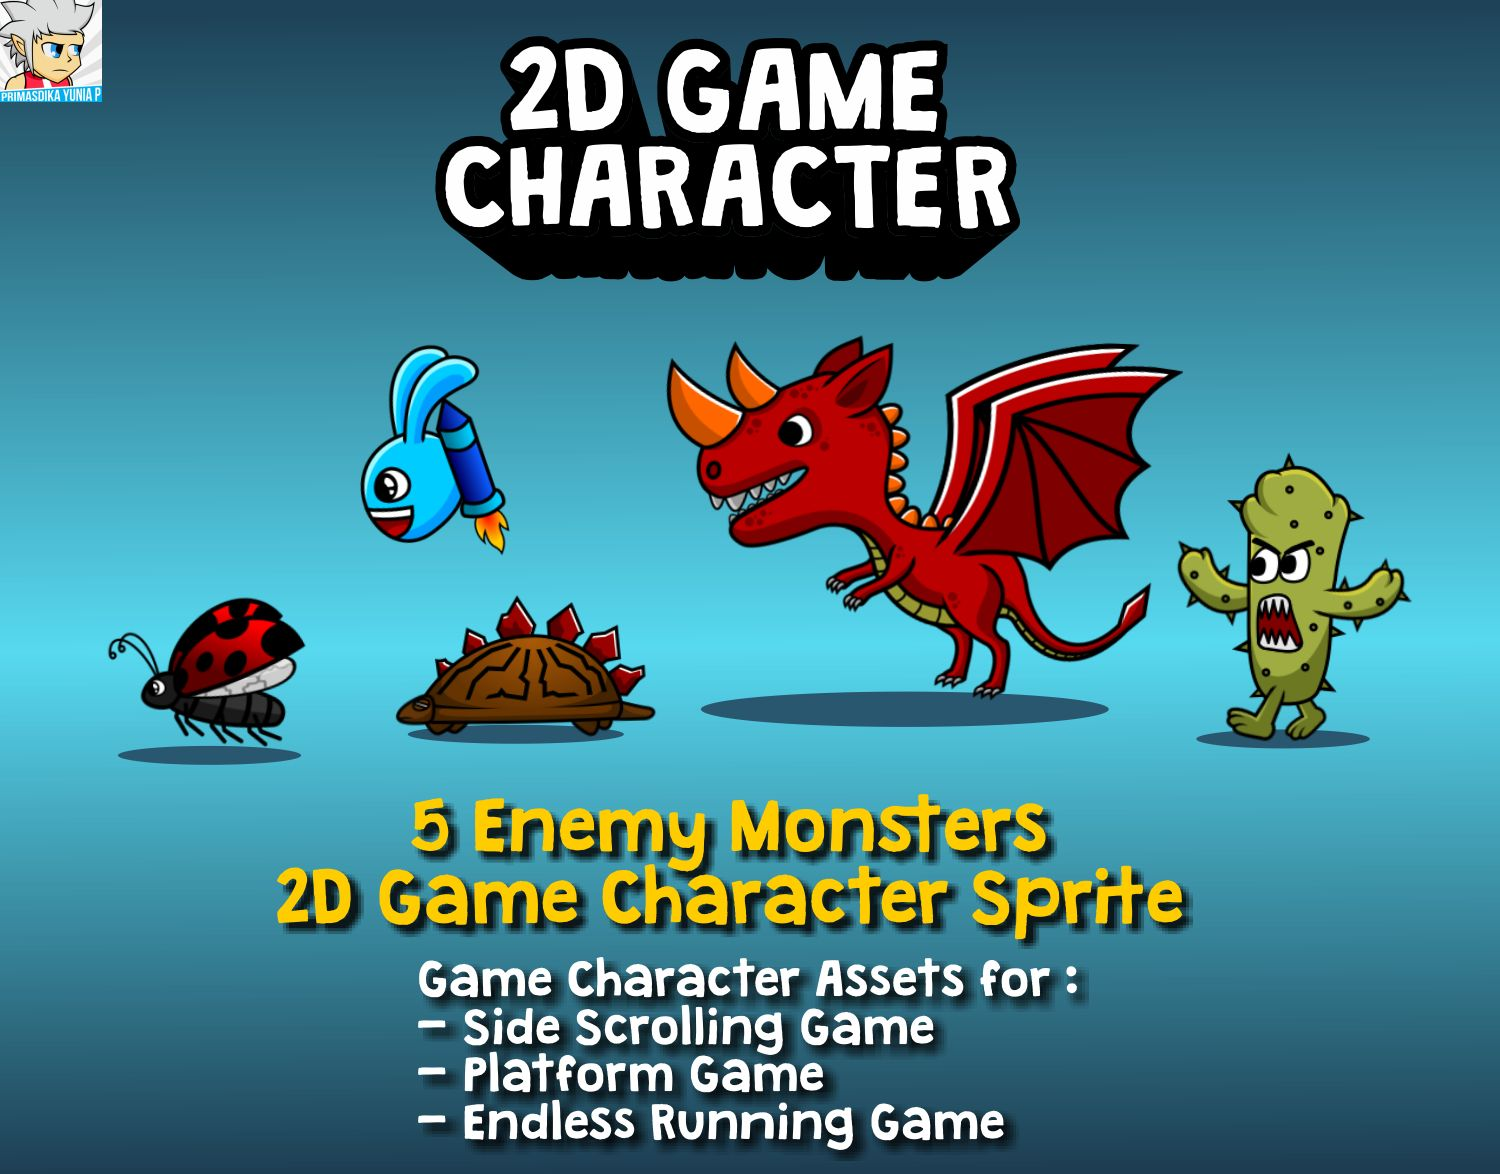 5 Enemy Monsters 2D Game Character Sprite Screenshot 1